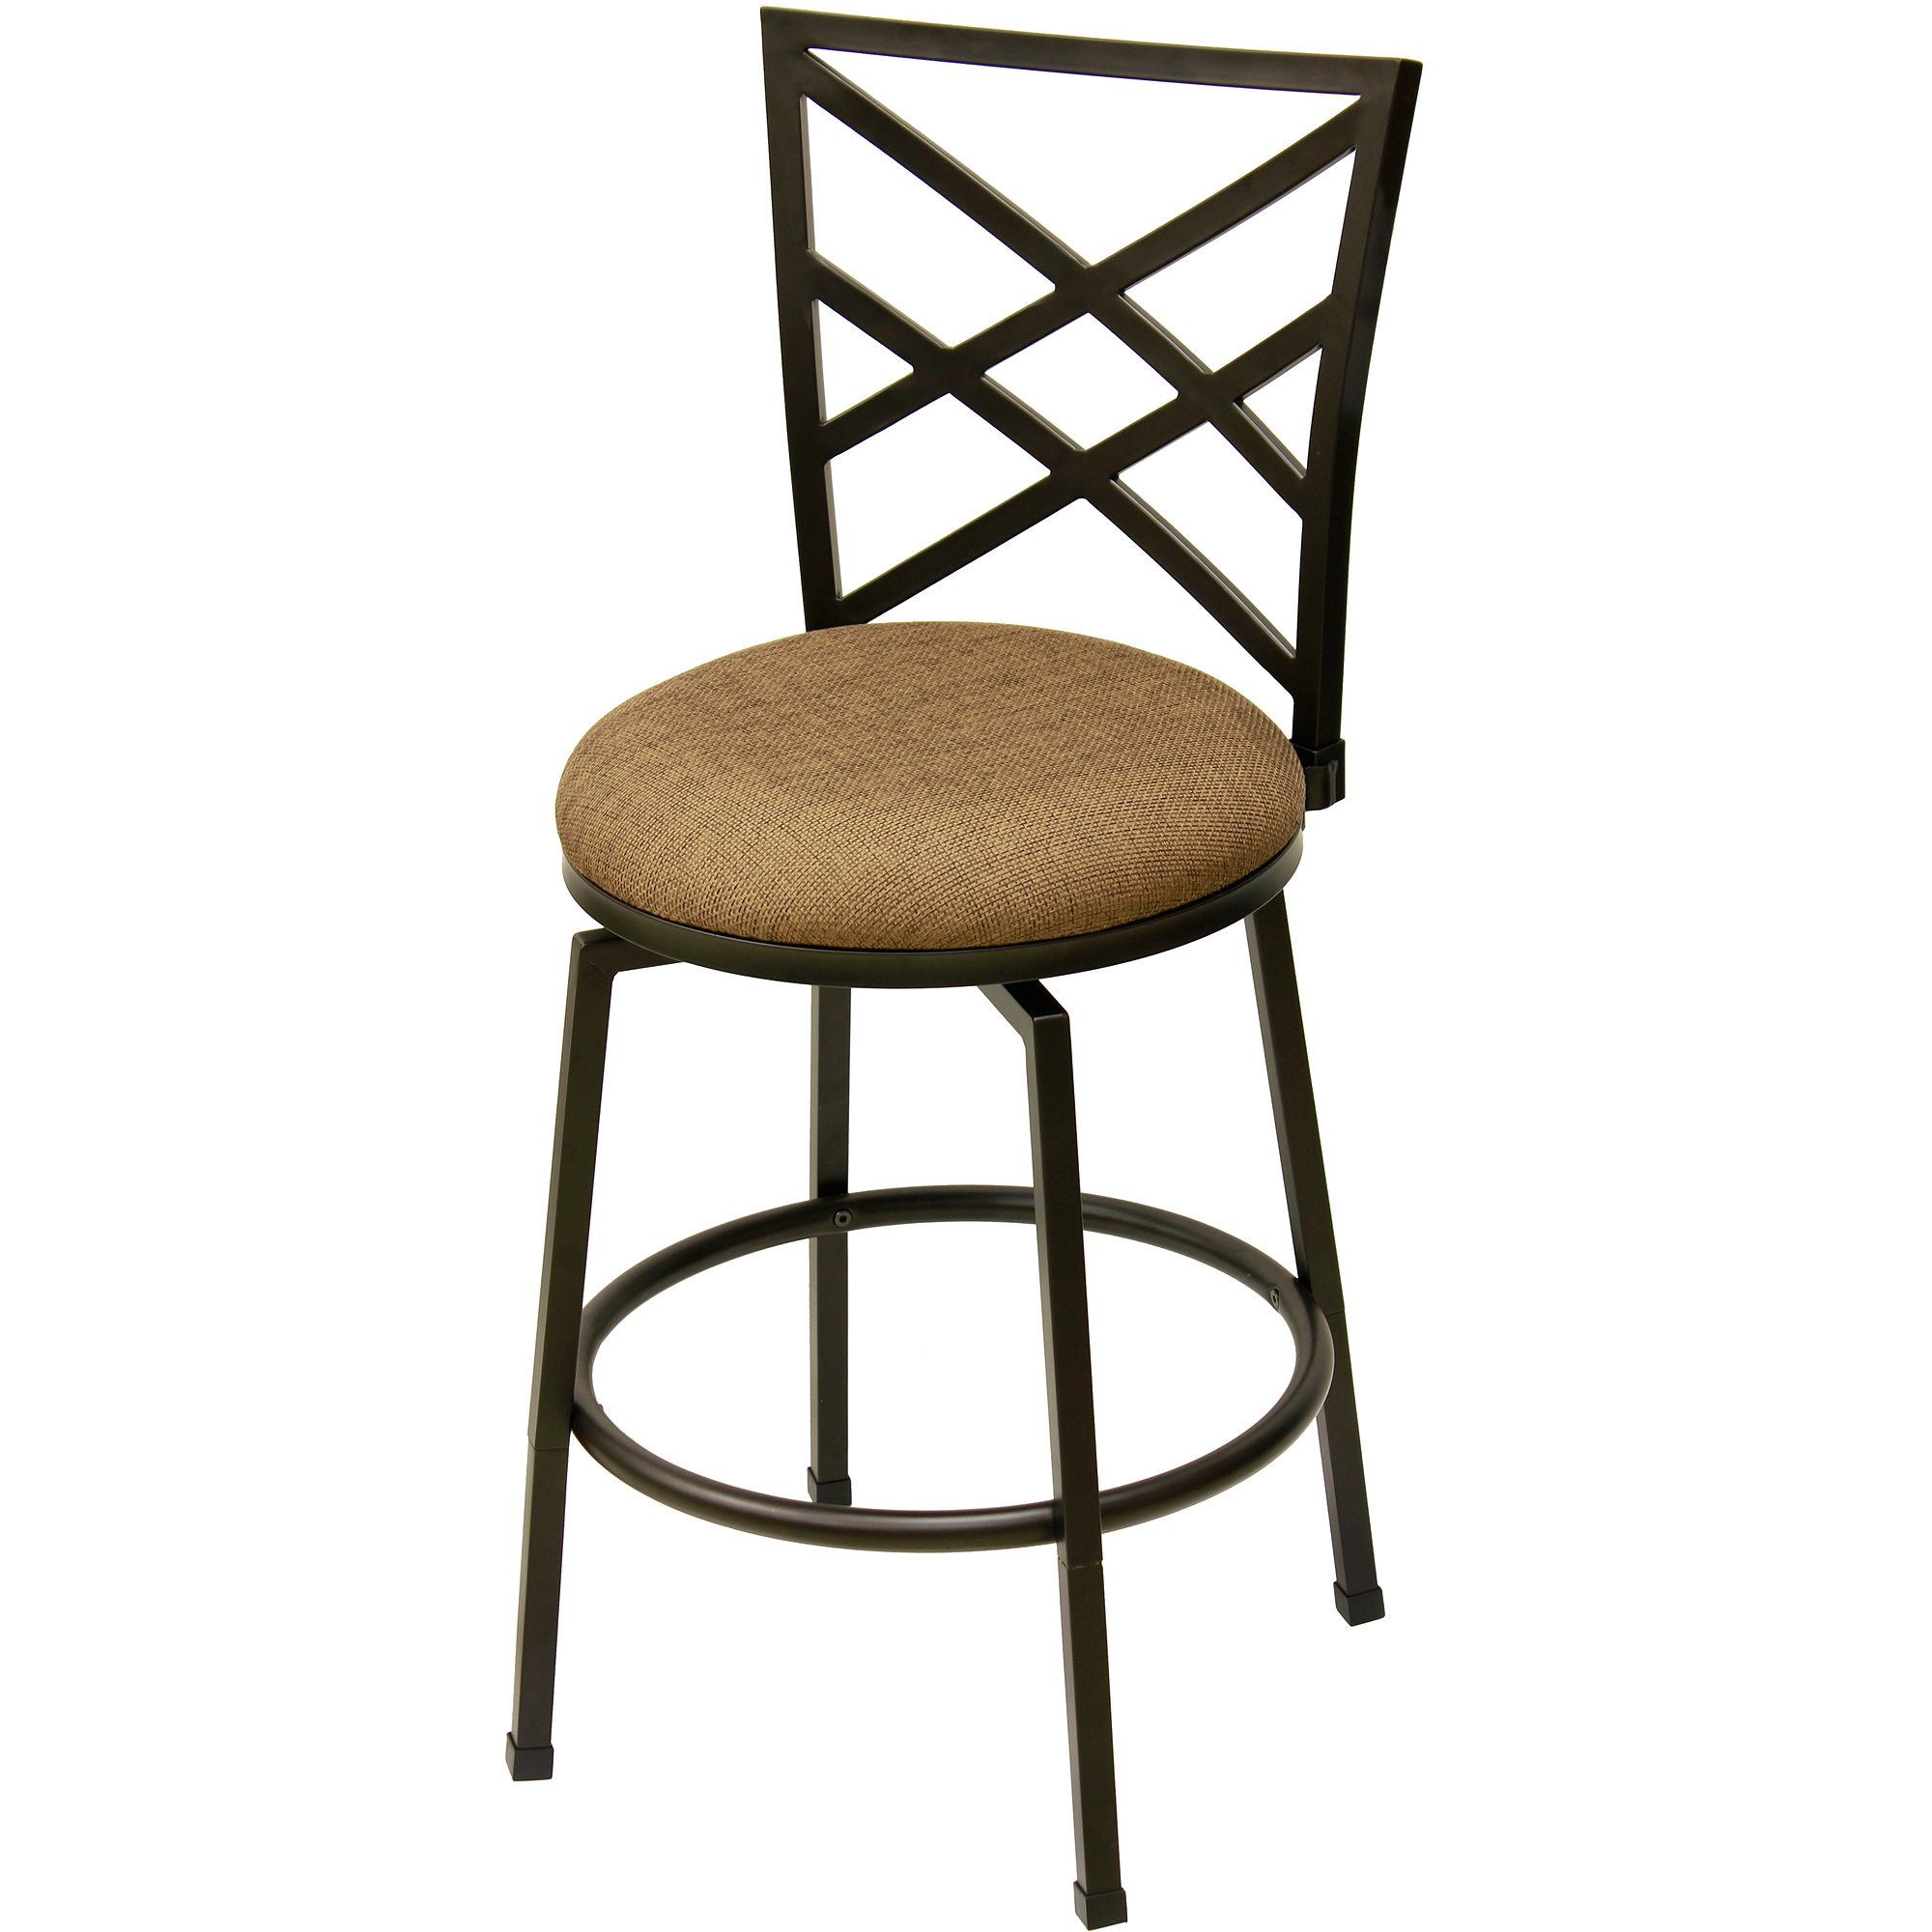 "Transitional Avery 24"" Barstool with Beige Woven Swivel Seat, Matte Black Finish"